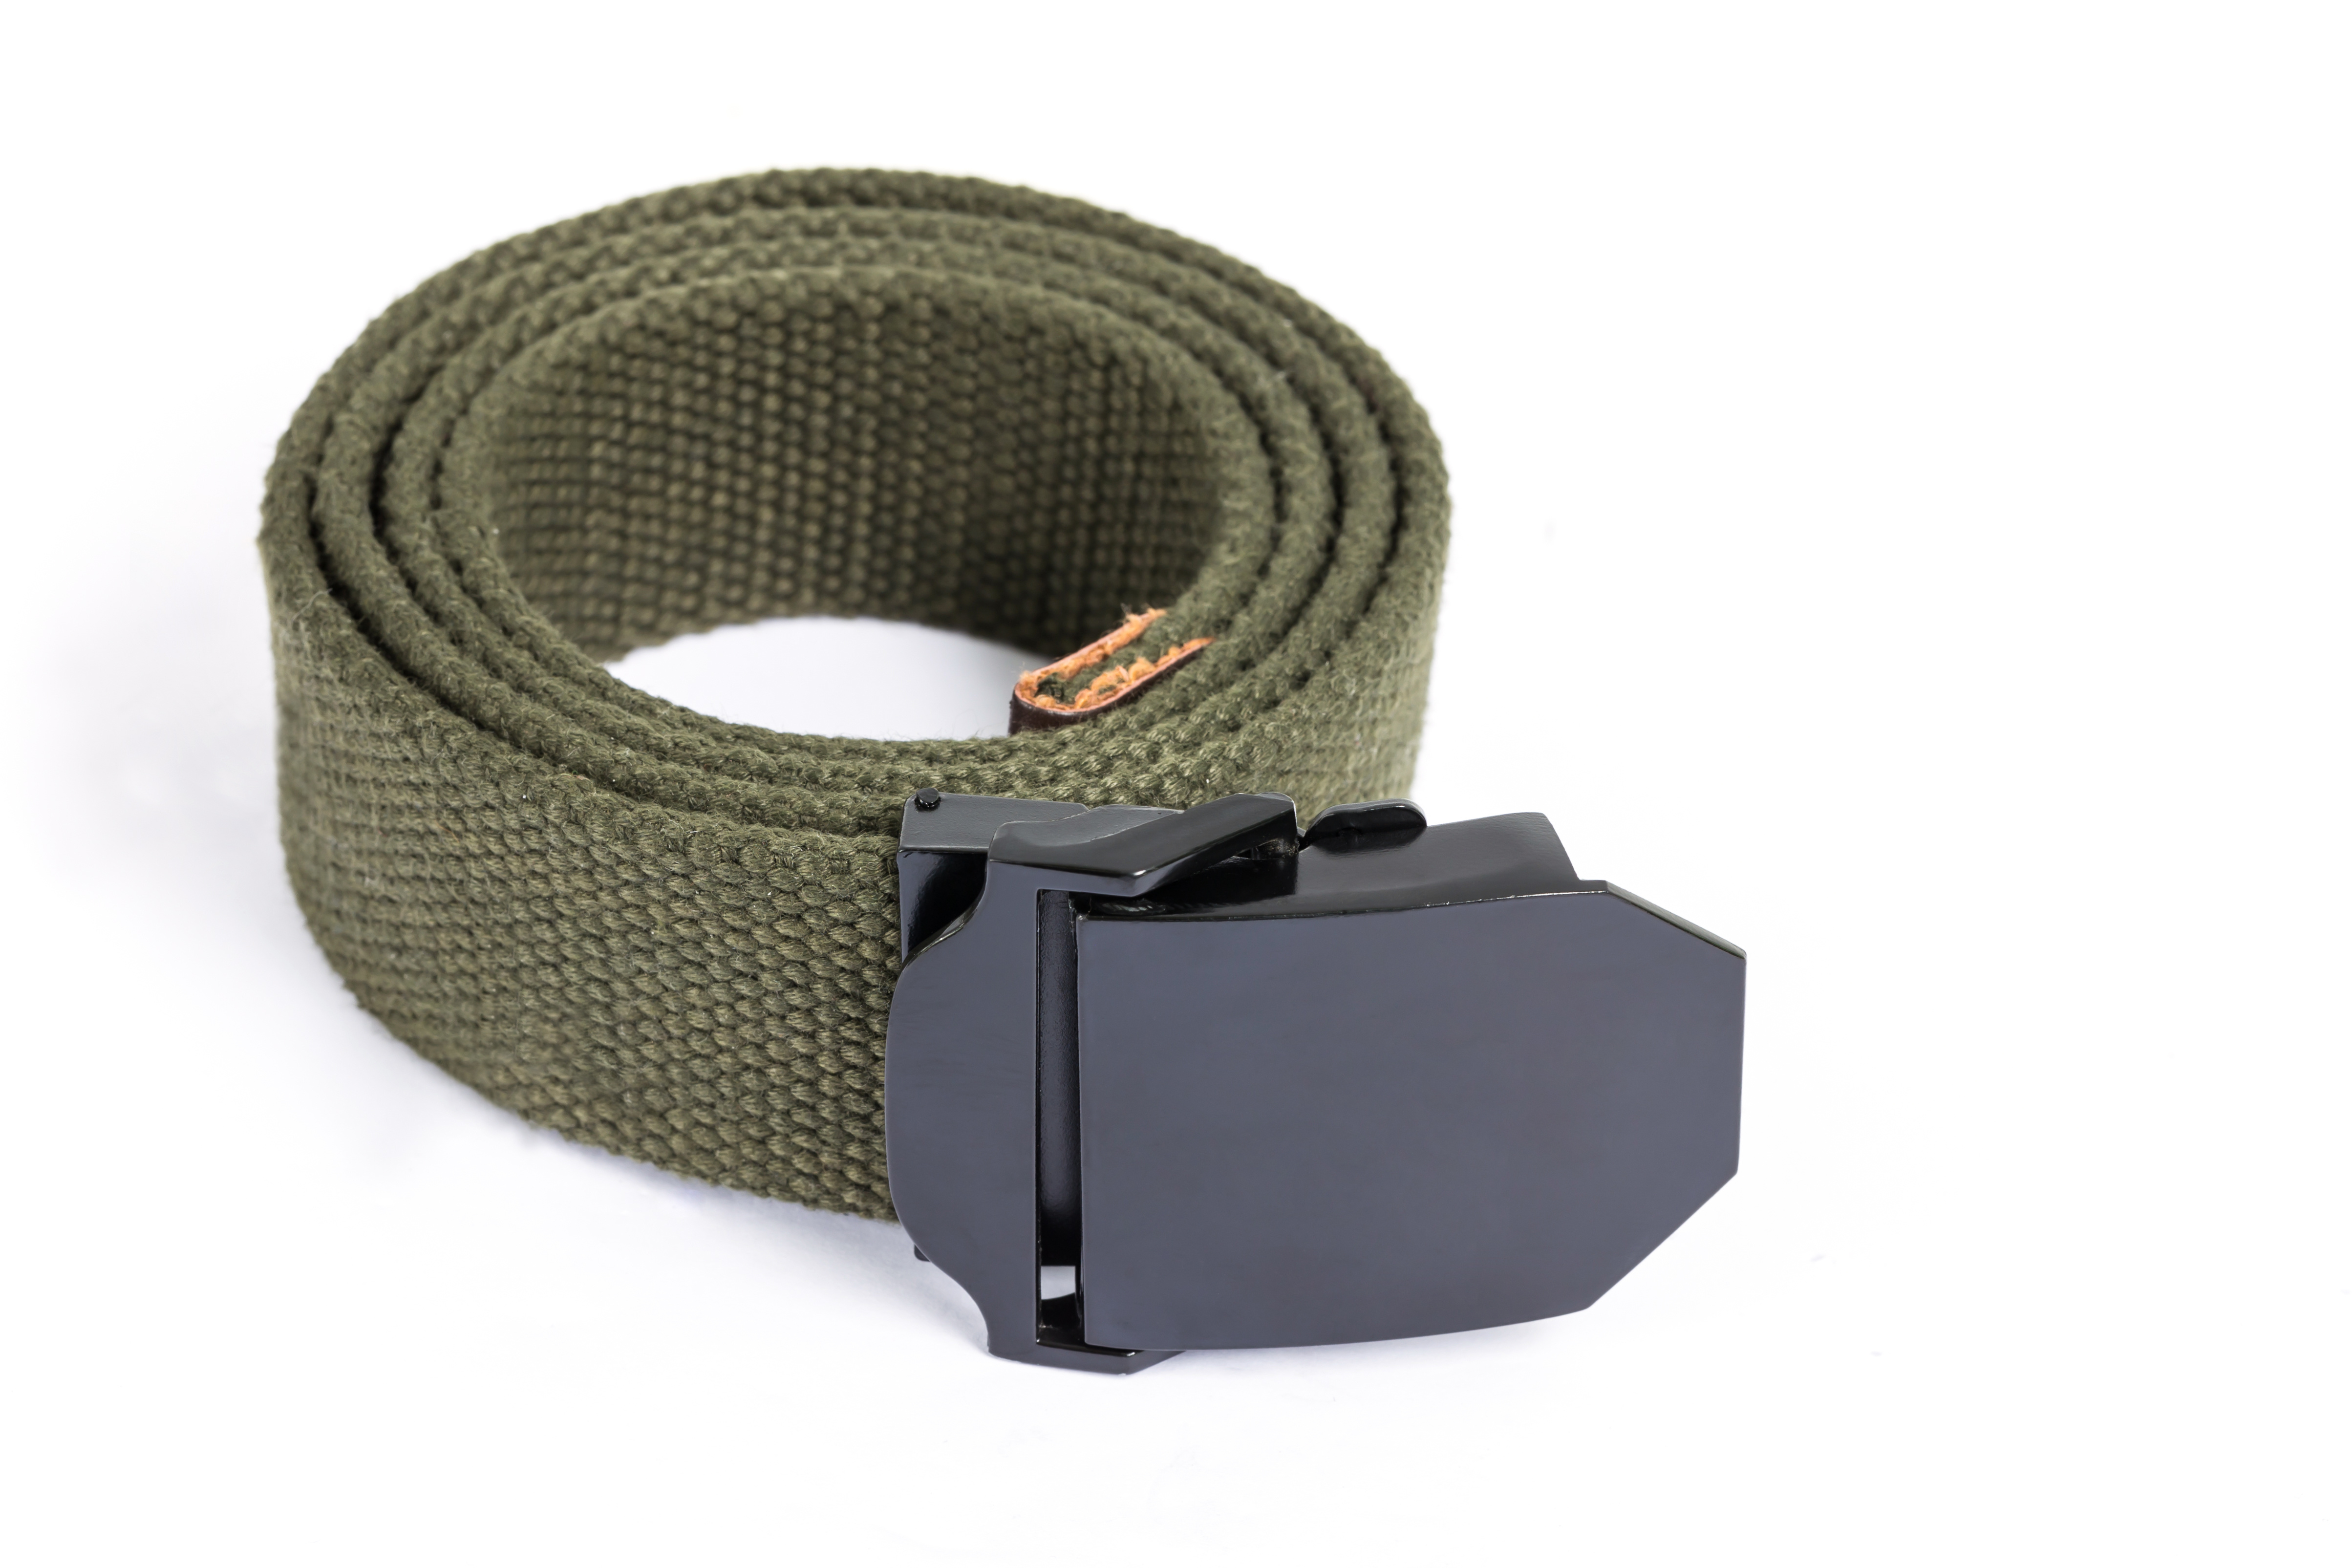 Consider These Tips When Buying Wholesale Military Belt Buckles